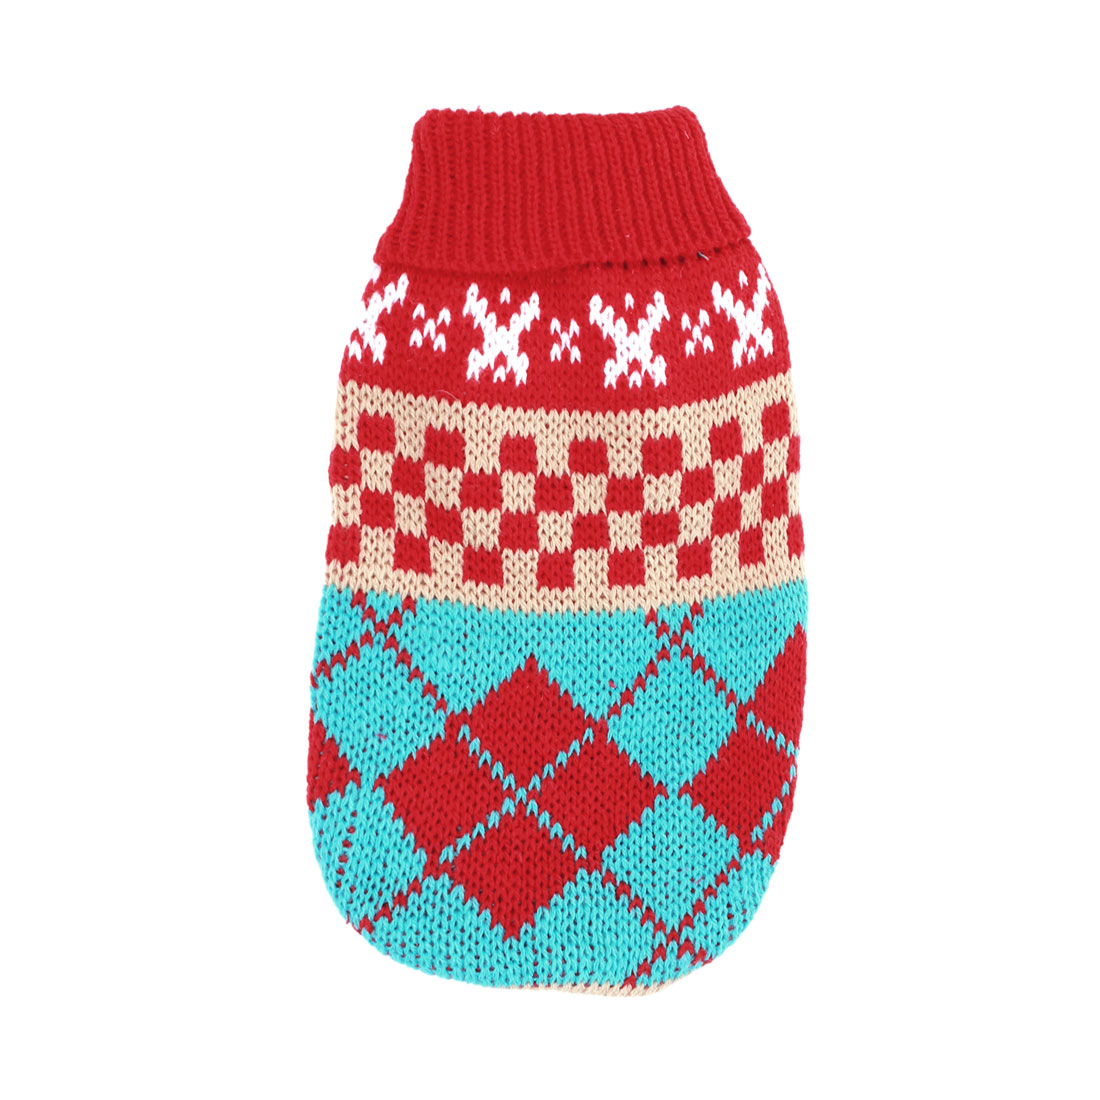 Plaids Pattern Multicolor Pet Chihuahua Sleeves Warm Sweater Apparel Size XXS